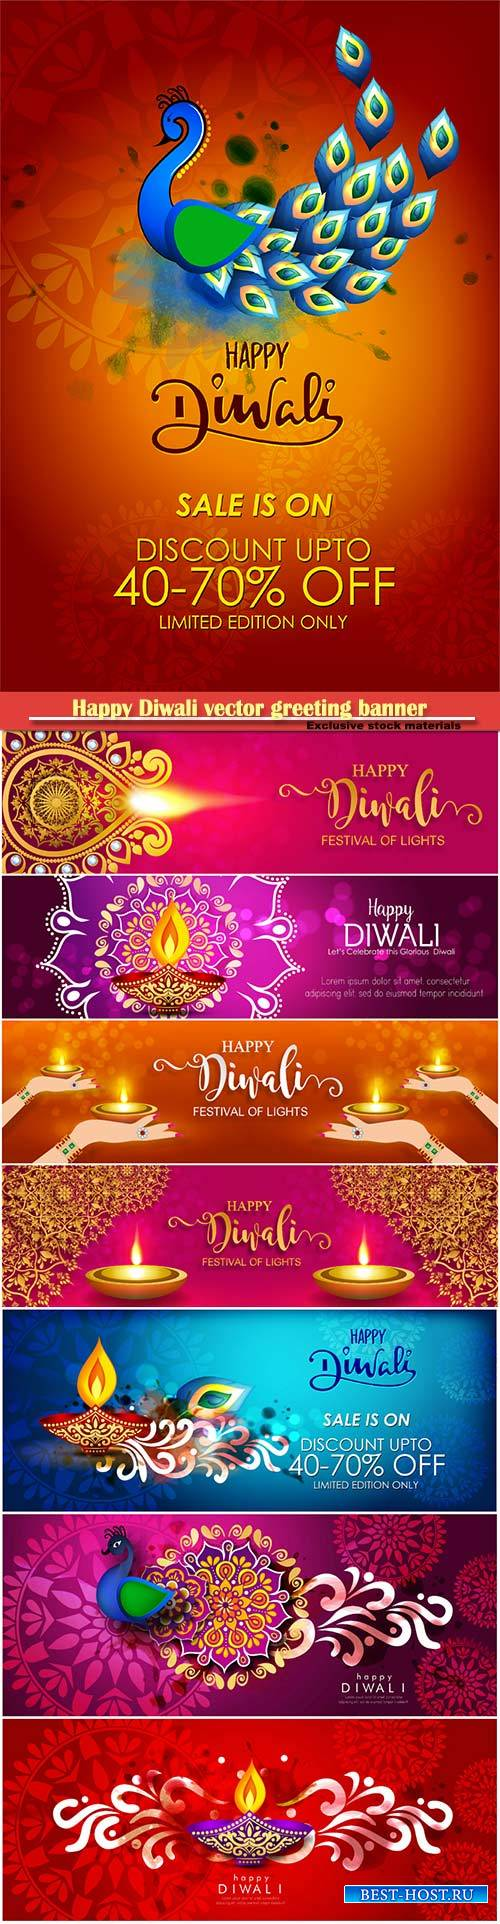 Happy Diwali vector greeting banner design